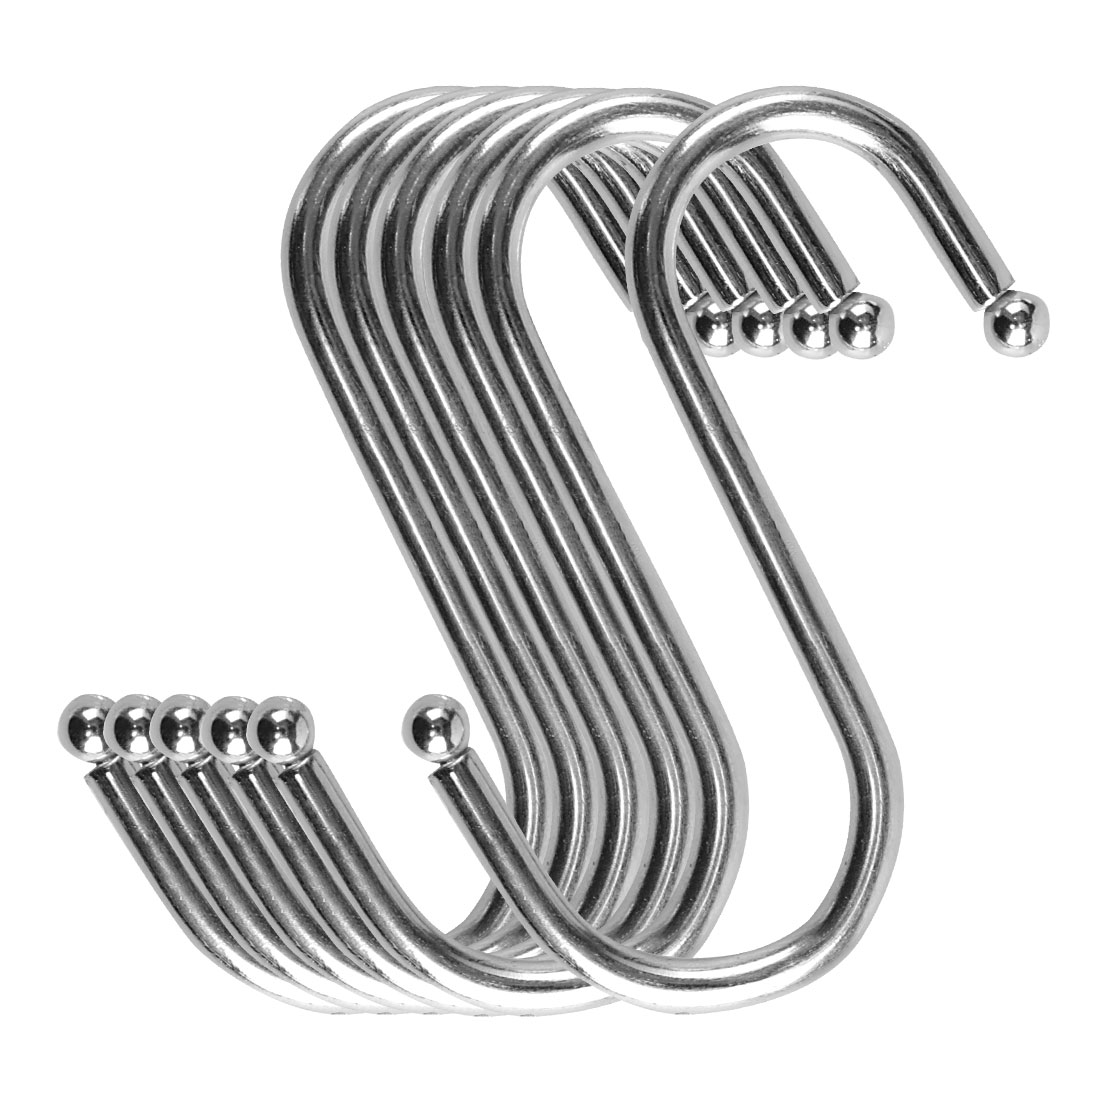 S Shape Hook Rack Stainless Steel for Kitchenware Clothes Towel Holder 6 Pack